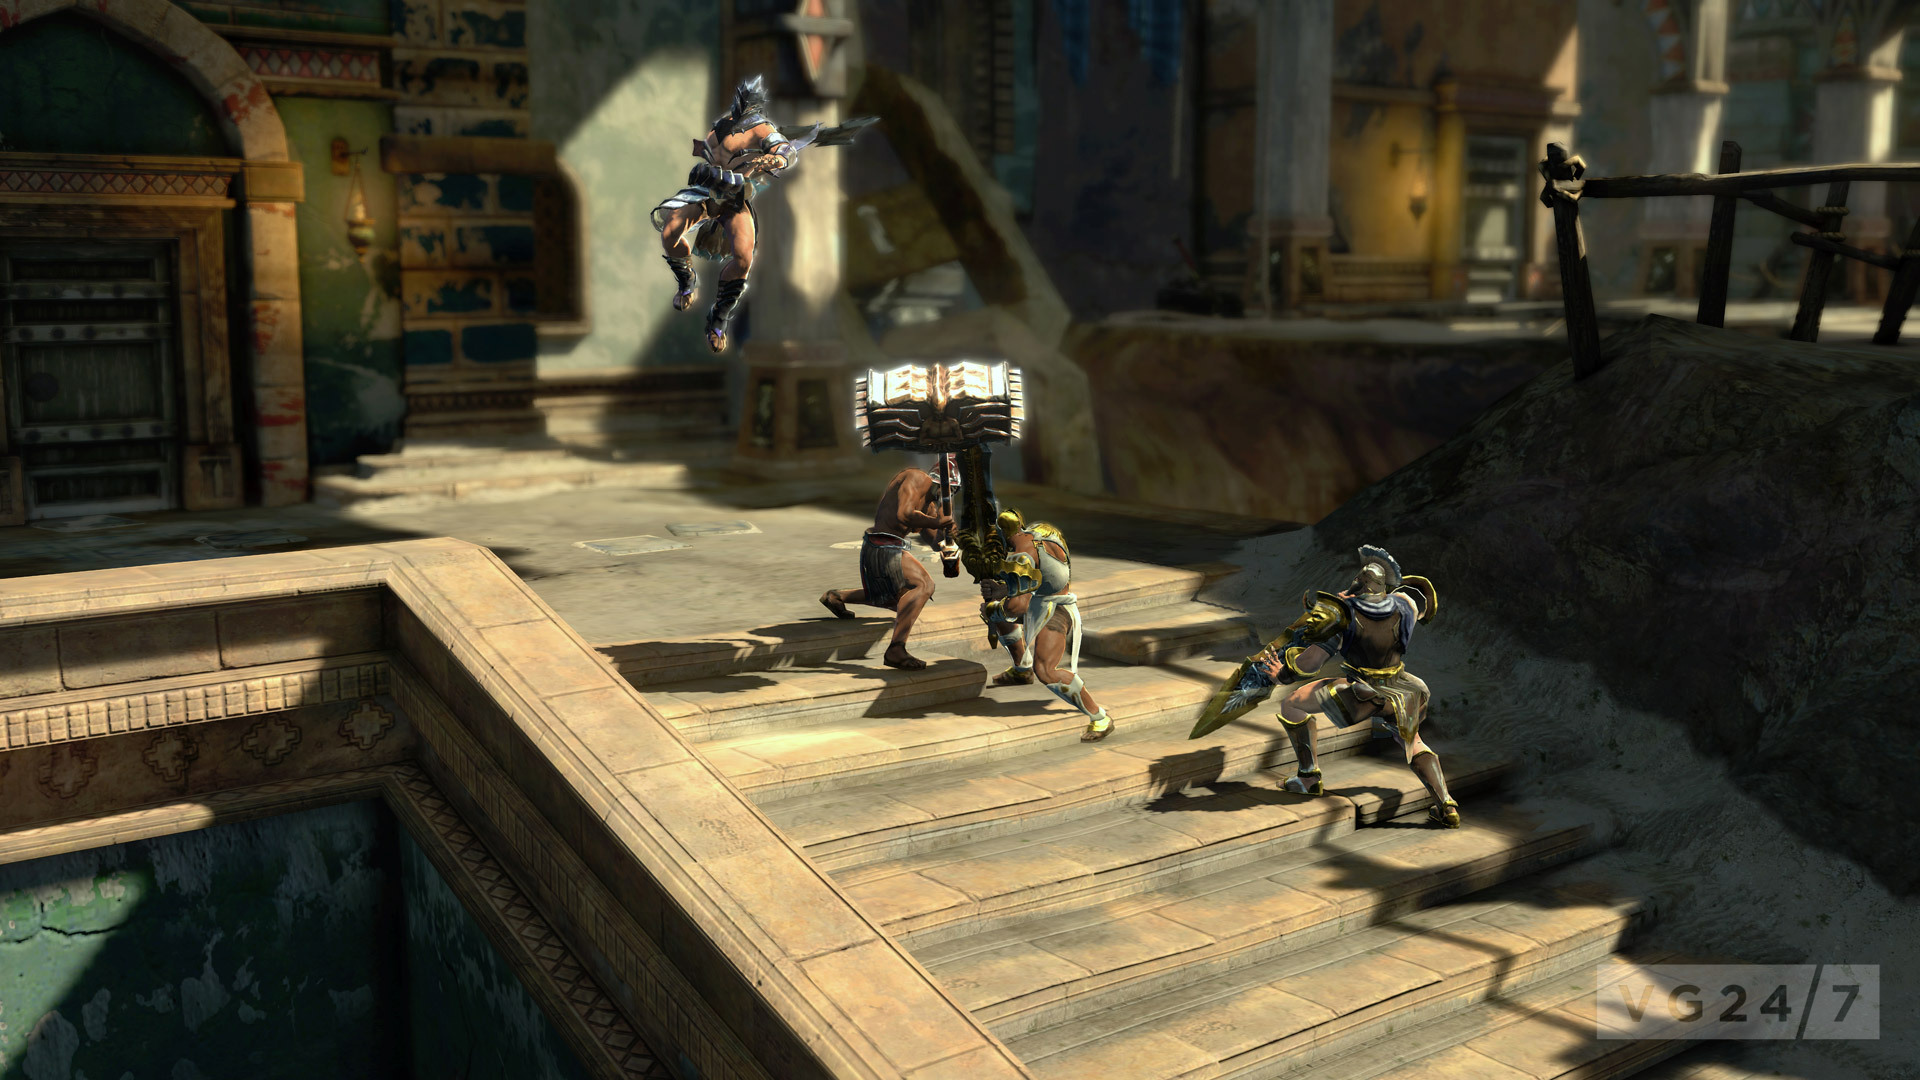 Quick shots god of war ascension screenshots vg247 sony has released a fresh batch of screenshots for god of war ascension showing off both the games singleplayer and multiplayer components voltagebd Choice Image